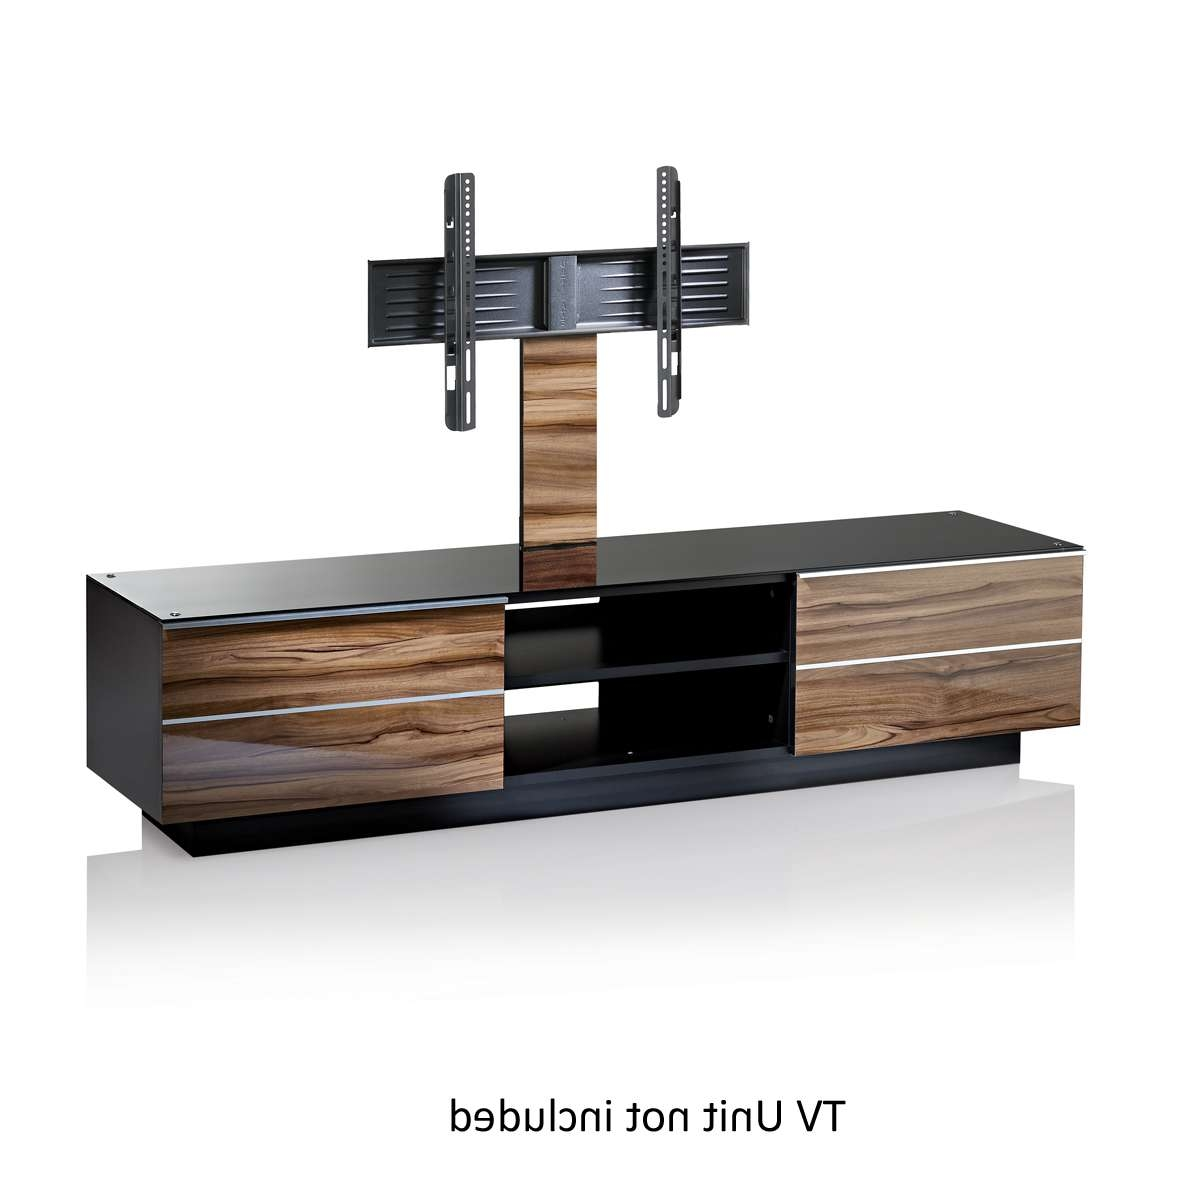 Milano G B 80 Mln Cantilever Tv Bracket,ukcf Ultimate,,uk Cf Regarding Tv Stands Cantilever (View 14 of 15)